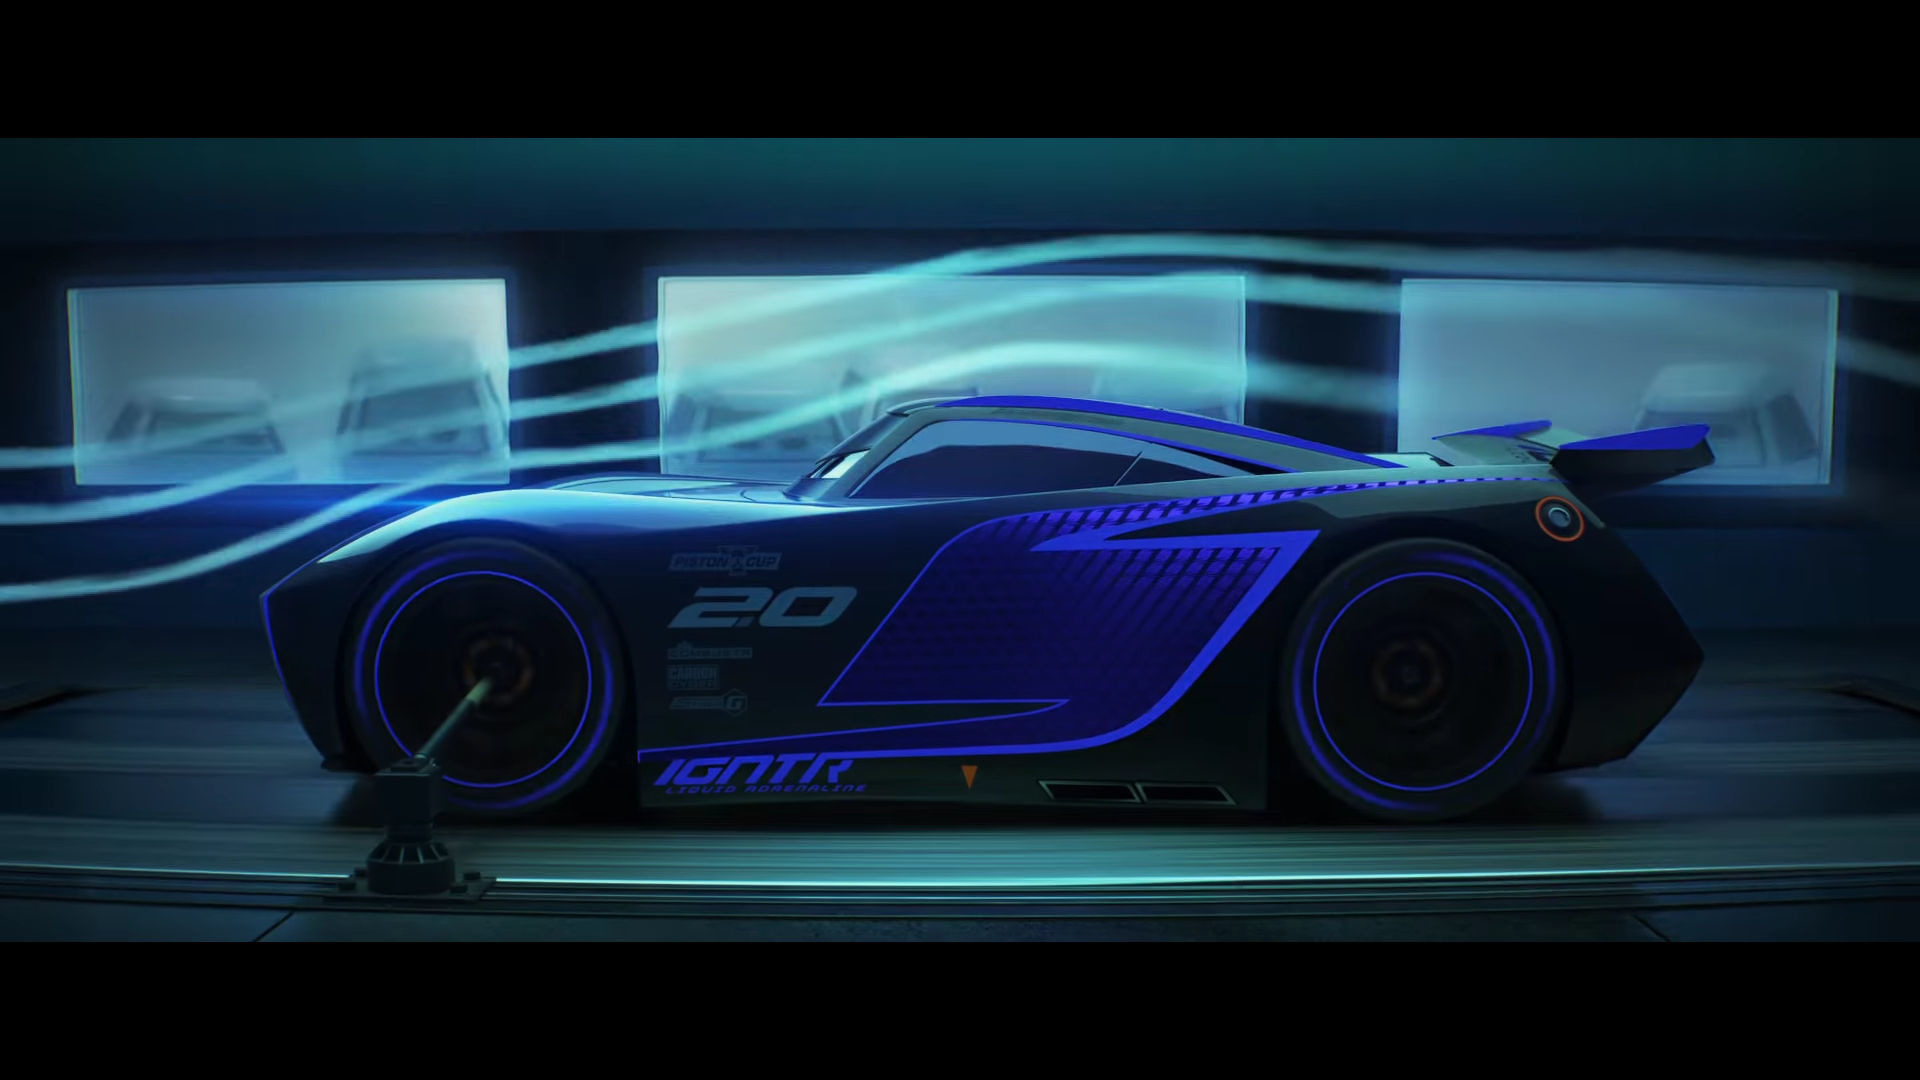 new cars 3 trailer highlights lightning mcqueen 39 s 850 hp rival jackson storm. Black Bedroom Furniture Sets. Home Design Ideas